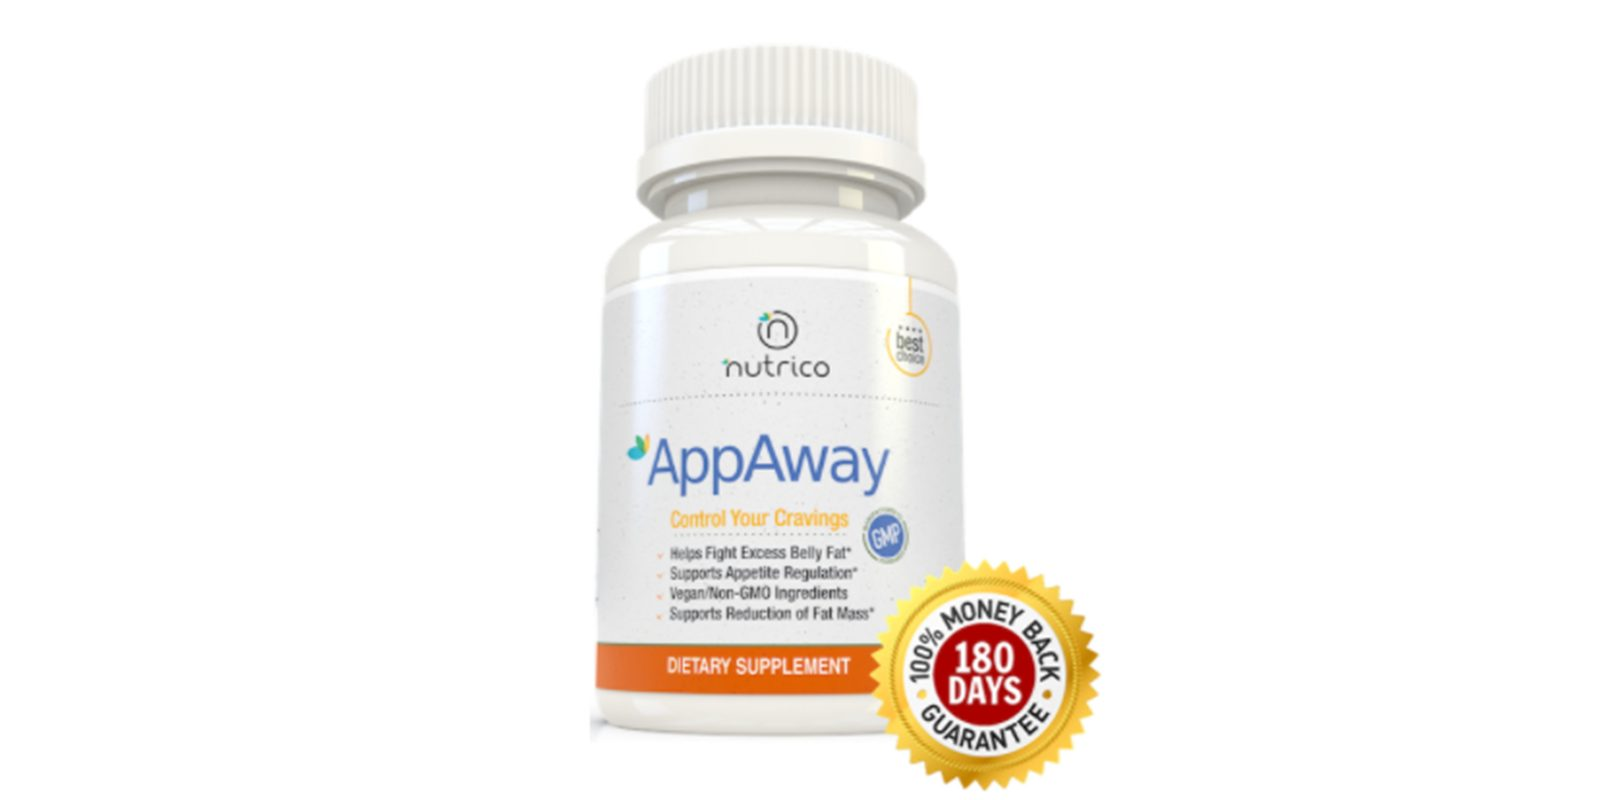 AppAway Review